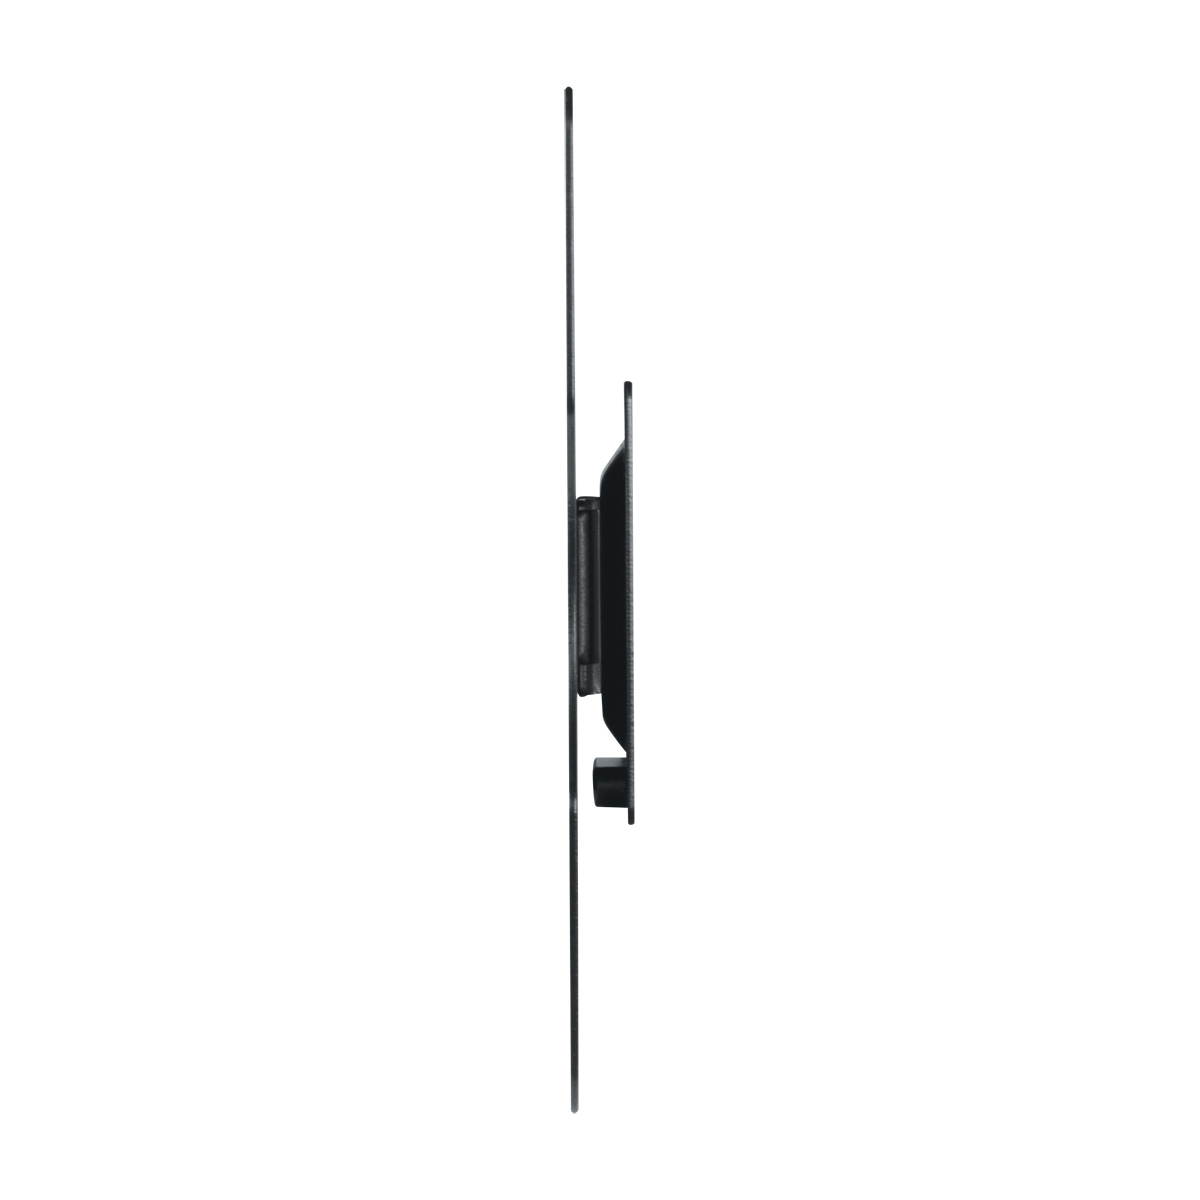 Slim TV Wall Mount ARCTIC TV Basic S Side View